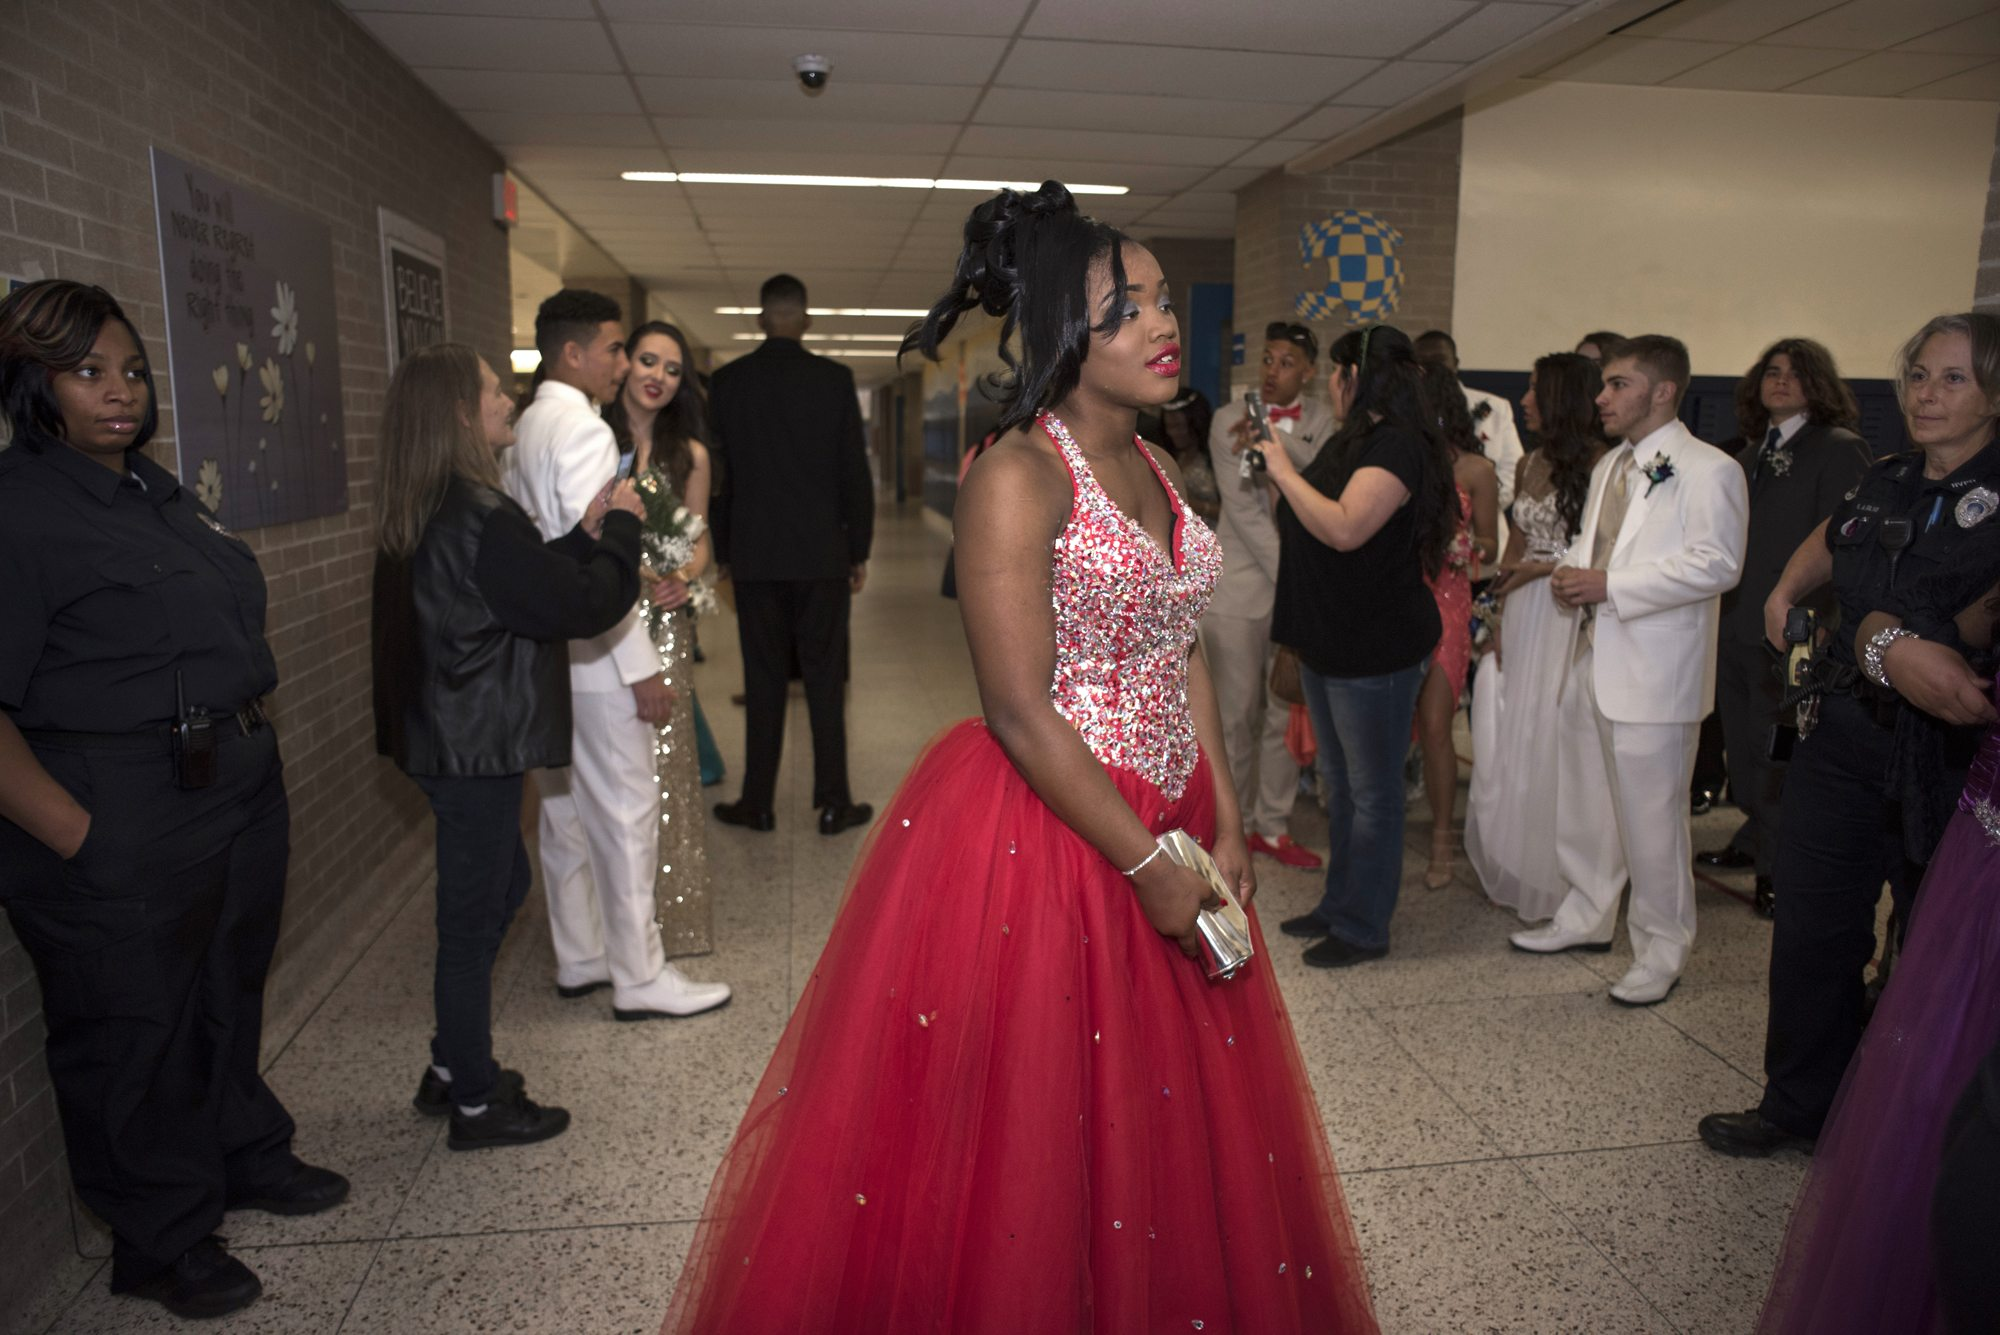 Tyneisha Wilder watches her friend and prom date pose for photographs in the lobby of East Allegheny High School in North Versailles before Prom. Wilder will graduate in June. (Photo by Martha Rial/PublicSource)